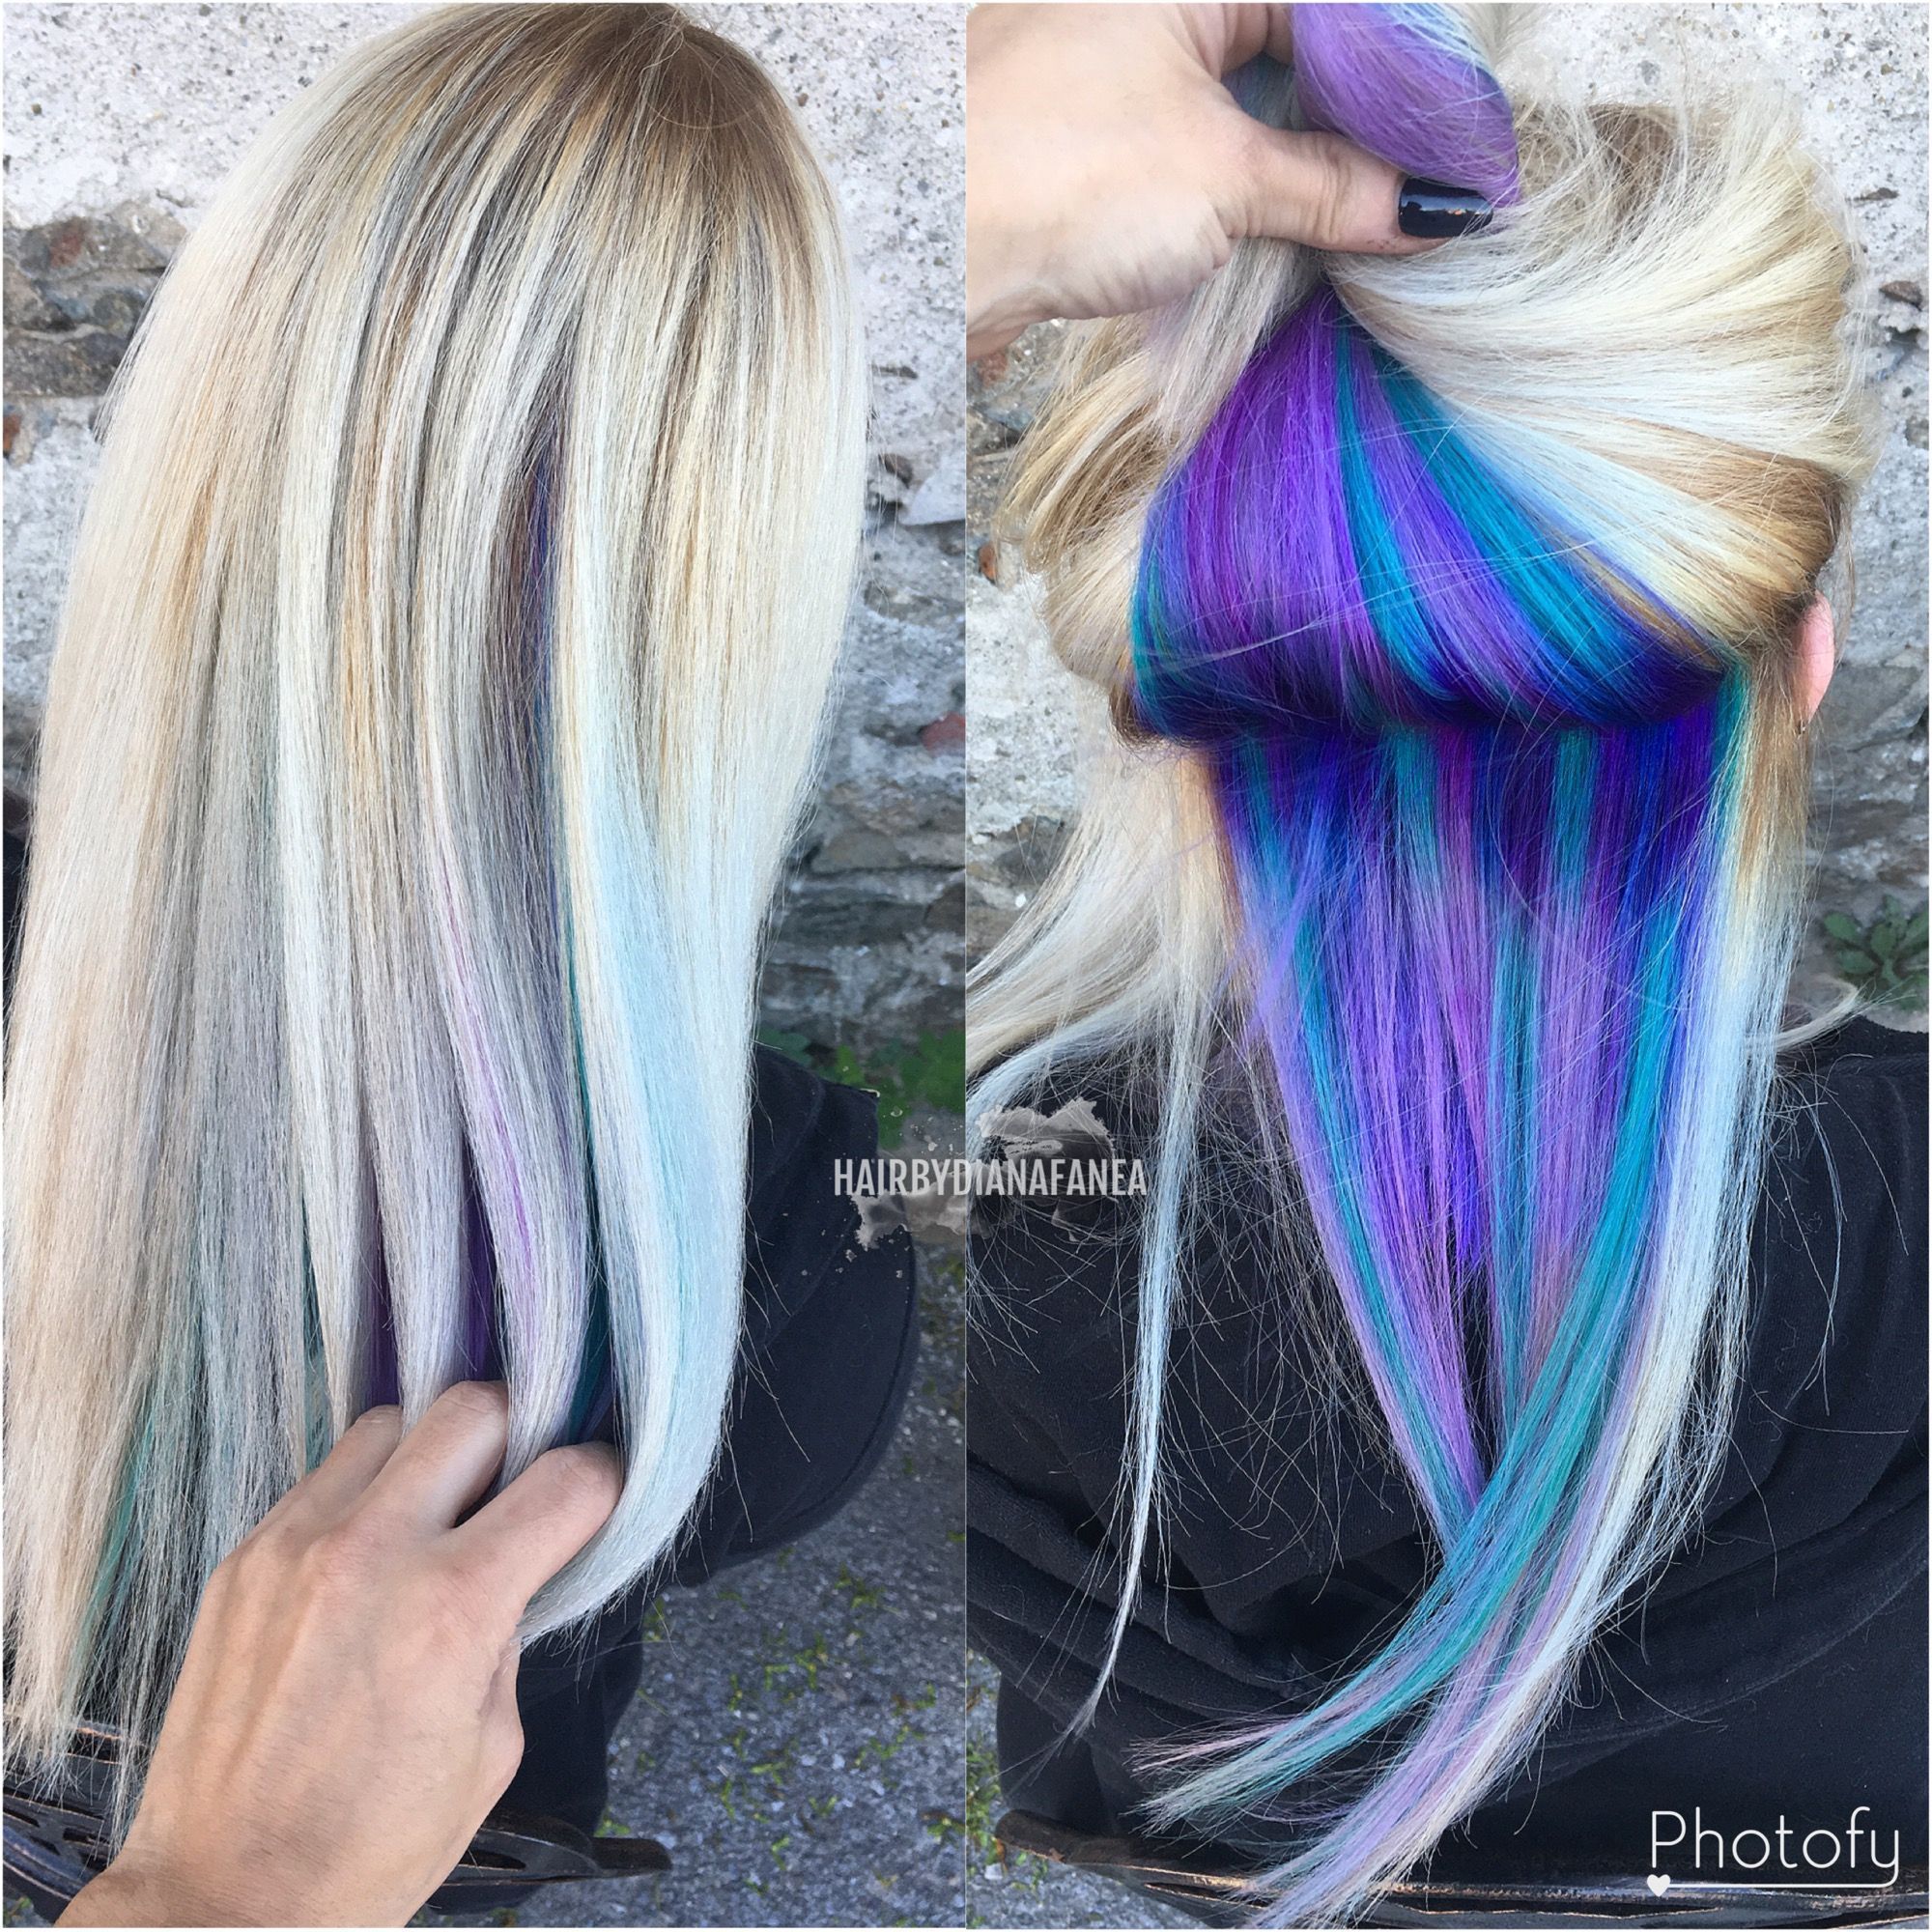 Hairstyle Trends 29 Peekaboo Highlights The Perfect Way To Spice Up Your Hair Photos Coll In 2020 Peekaboo Hair Brunette Hair Color Blonde Hair Color